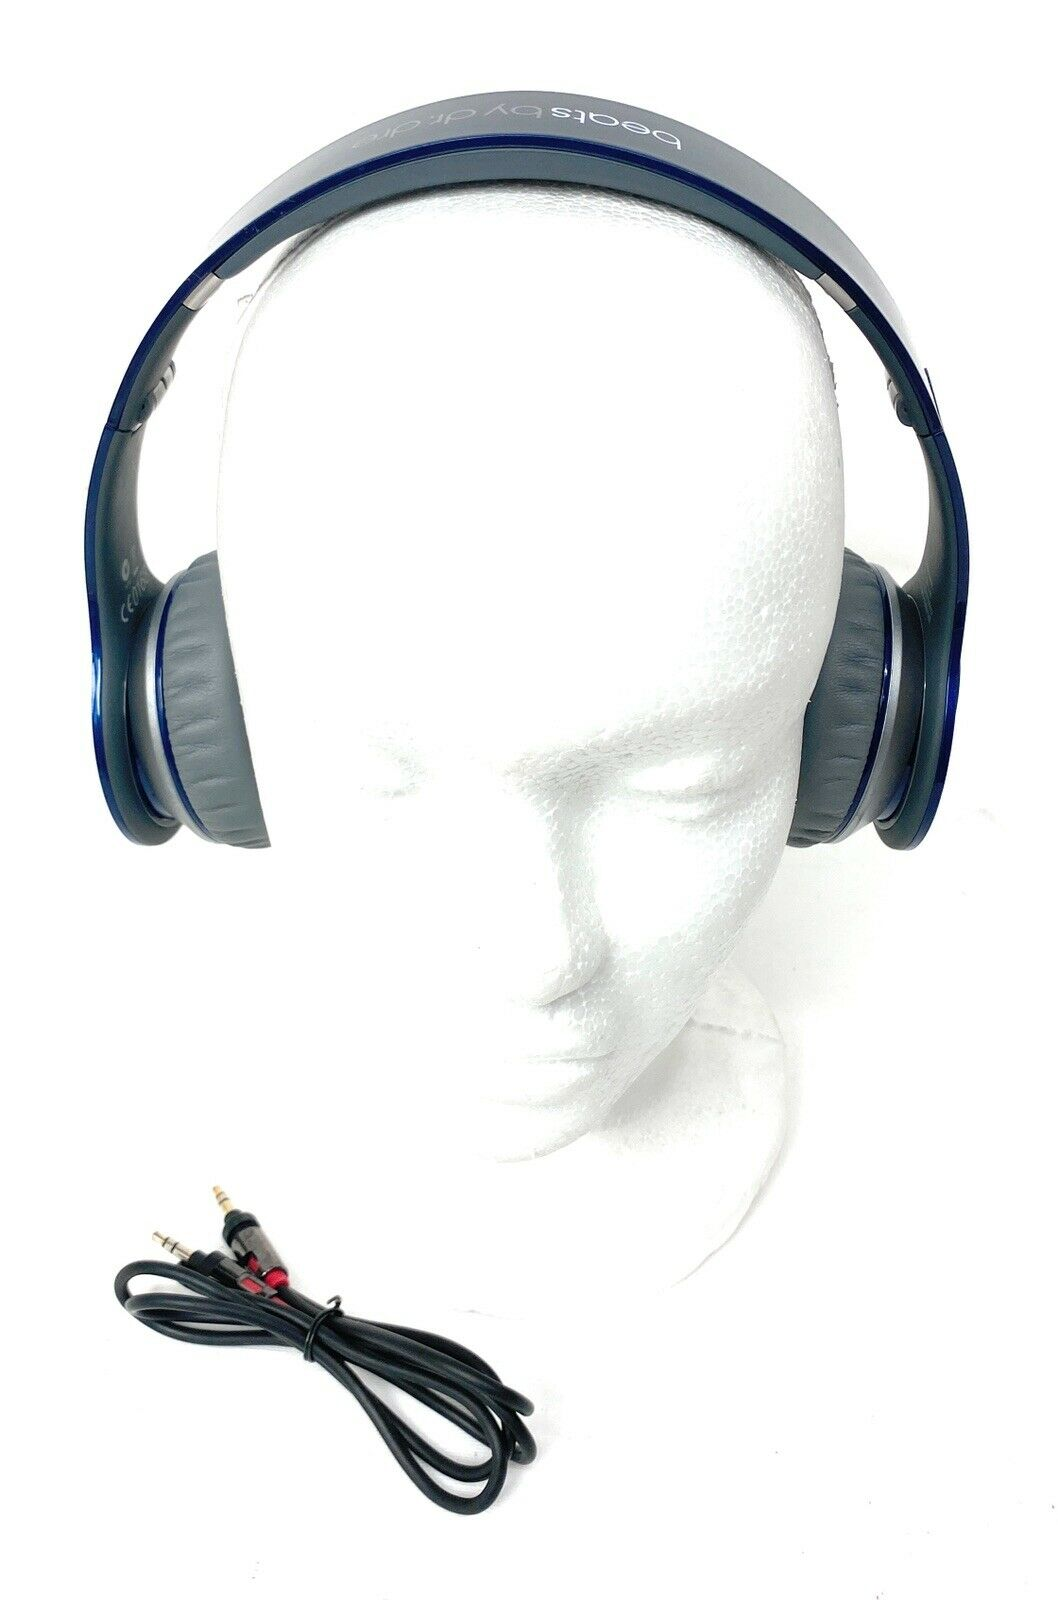 Monster Beats By Dr Dre Wireless Bluetooth Headphones Blue 810 00012 00 For Sale Online